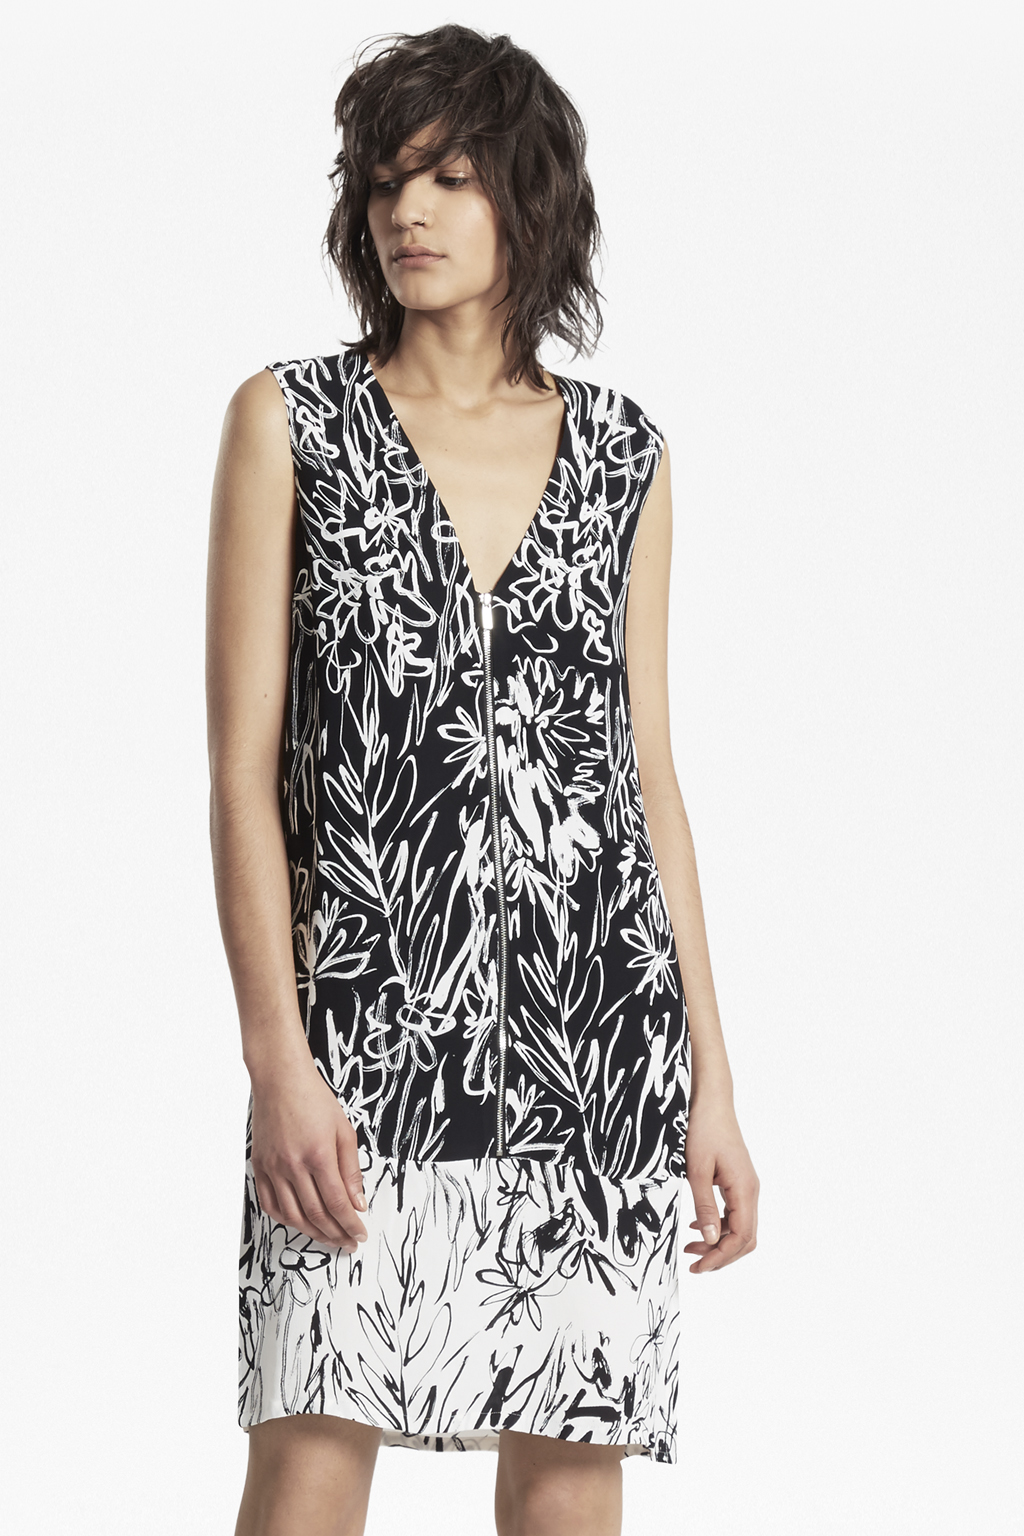 Copley Crepe Print Shift Dress - Black/summer white French Connection bLm9WX2rD